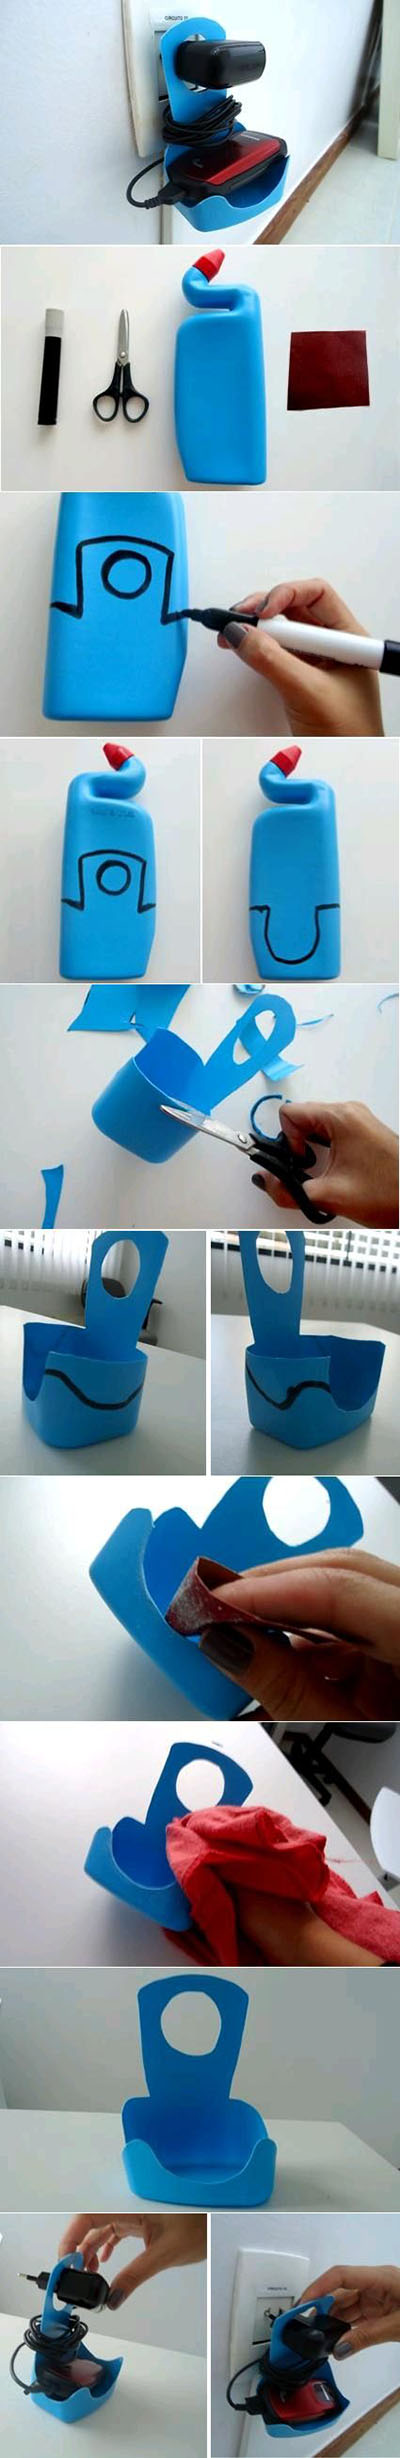 5  DIY Plastic Bottle Mobile Phone Charger Holder8709553